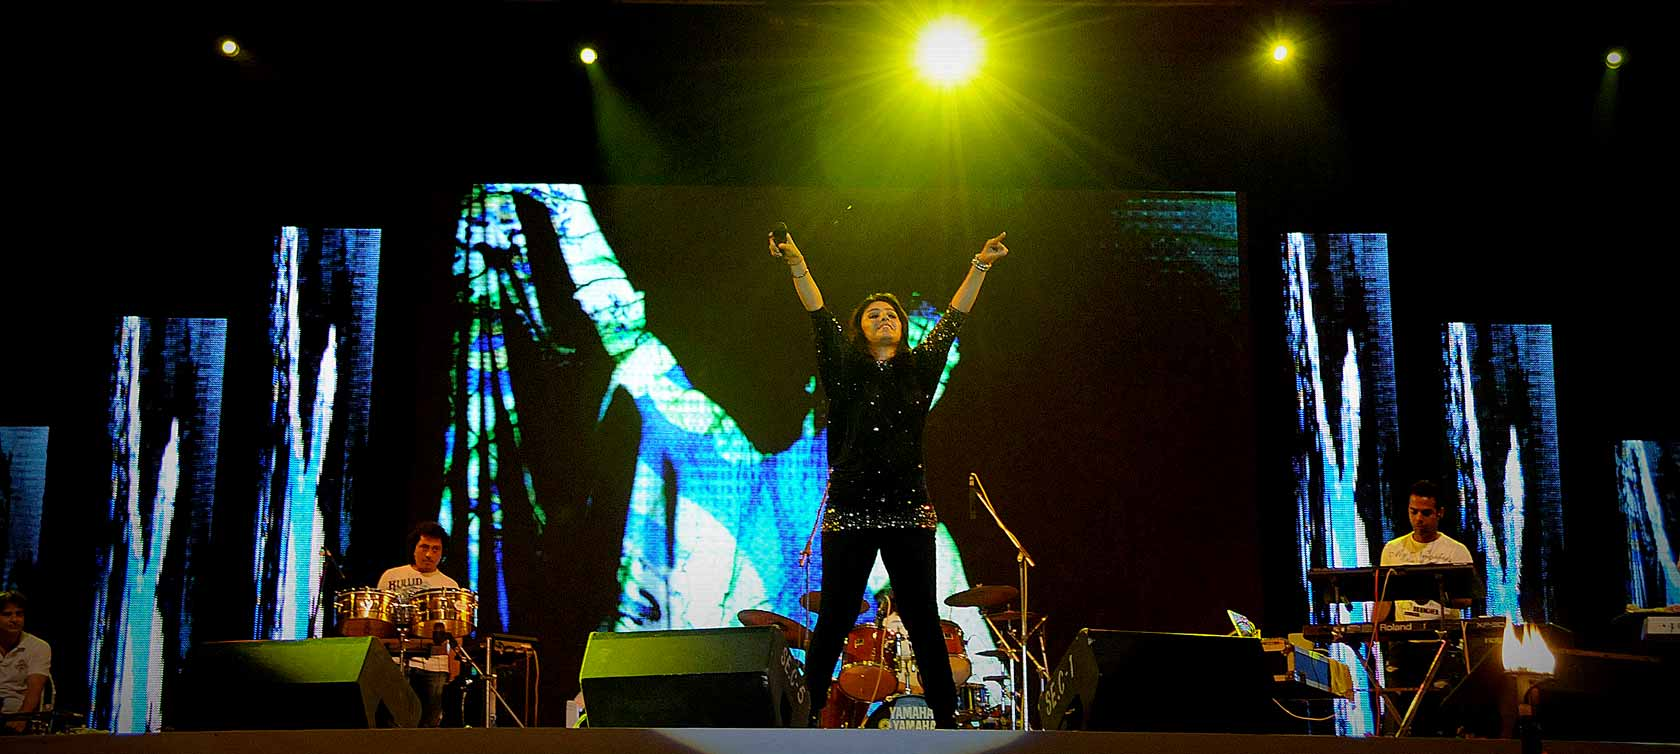 Sunidhi Chauhan Live In Concert, Pune